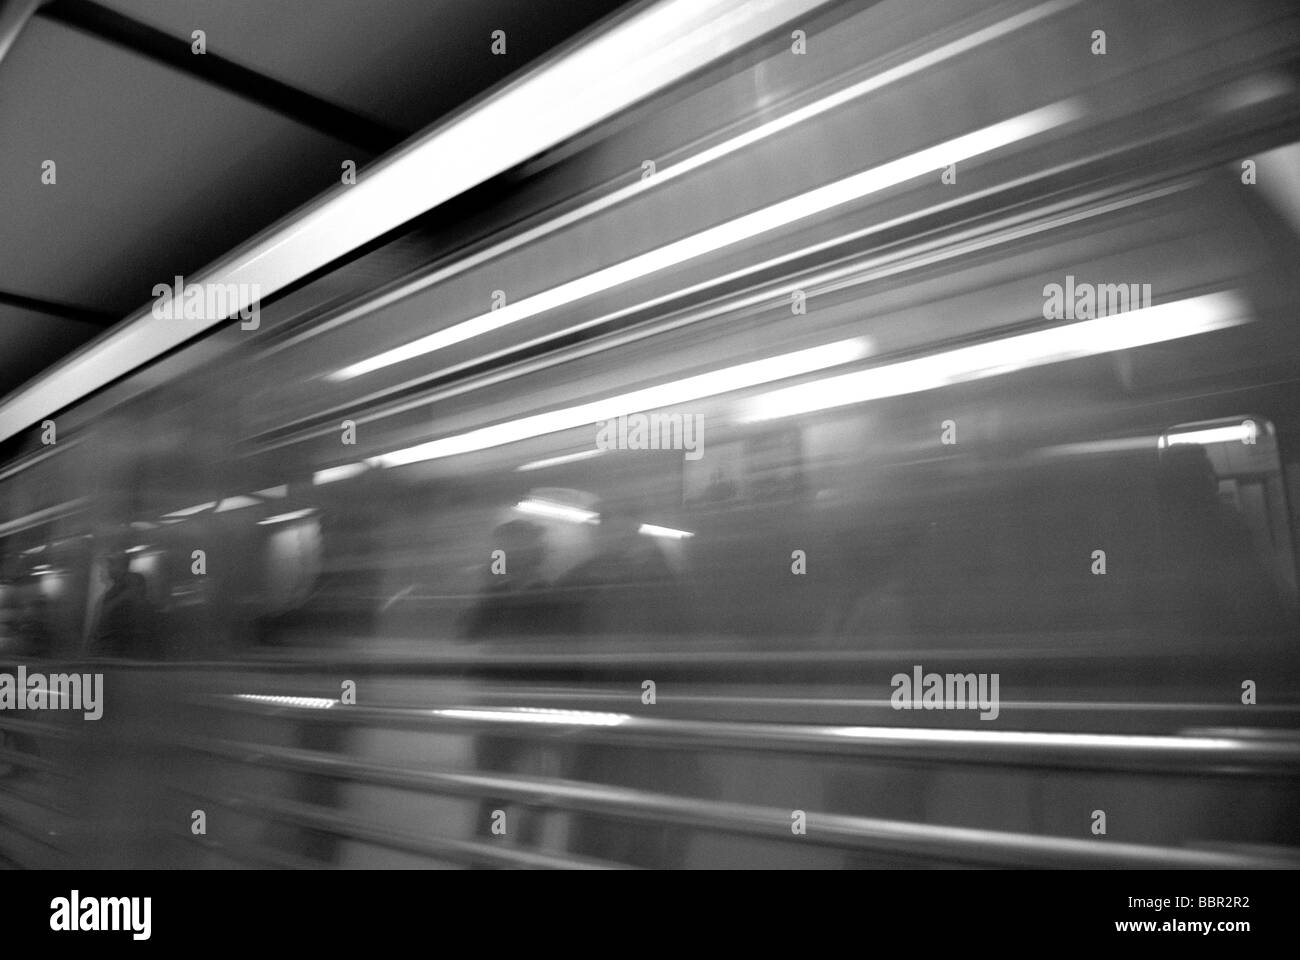 METRO TRAIN IN MOTION - Stock Image